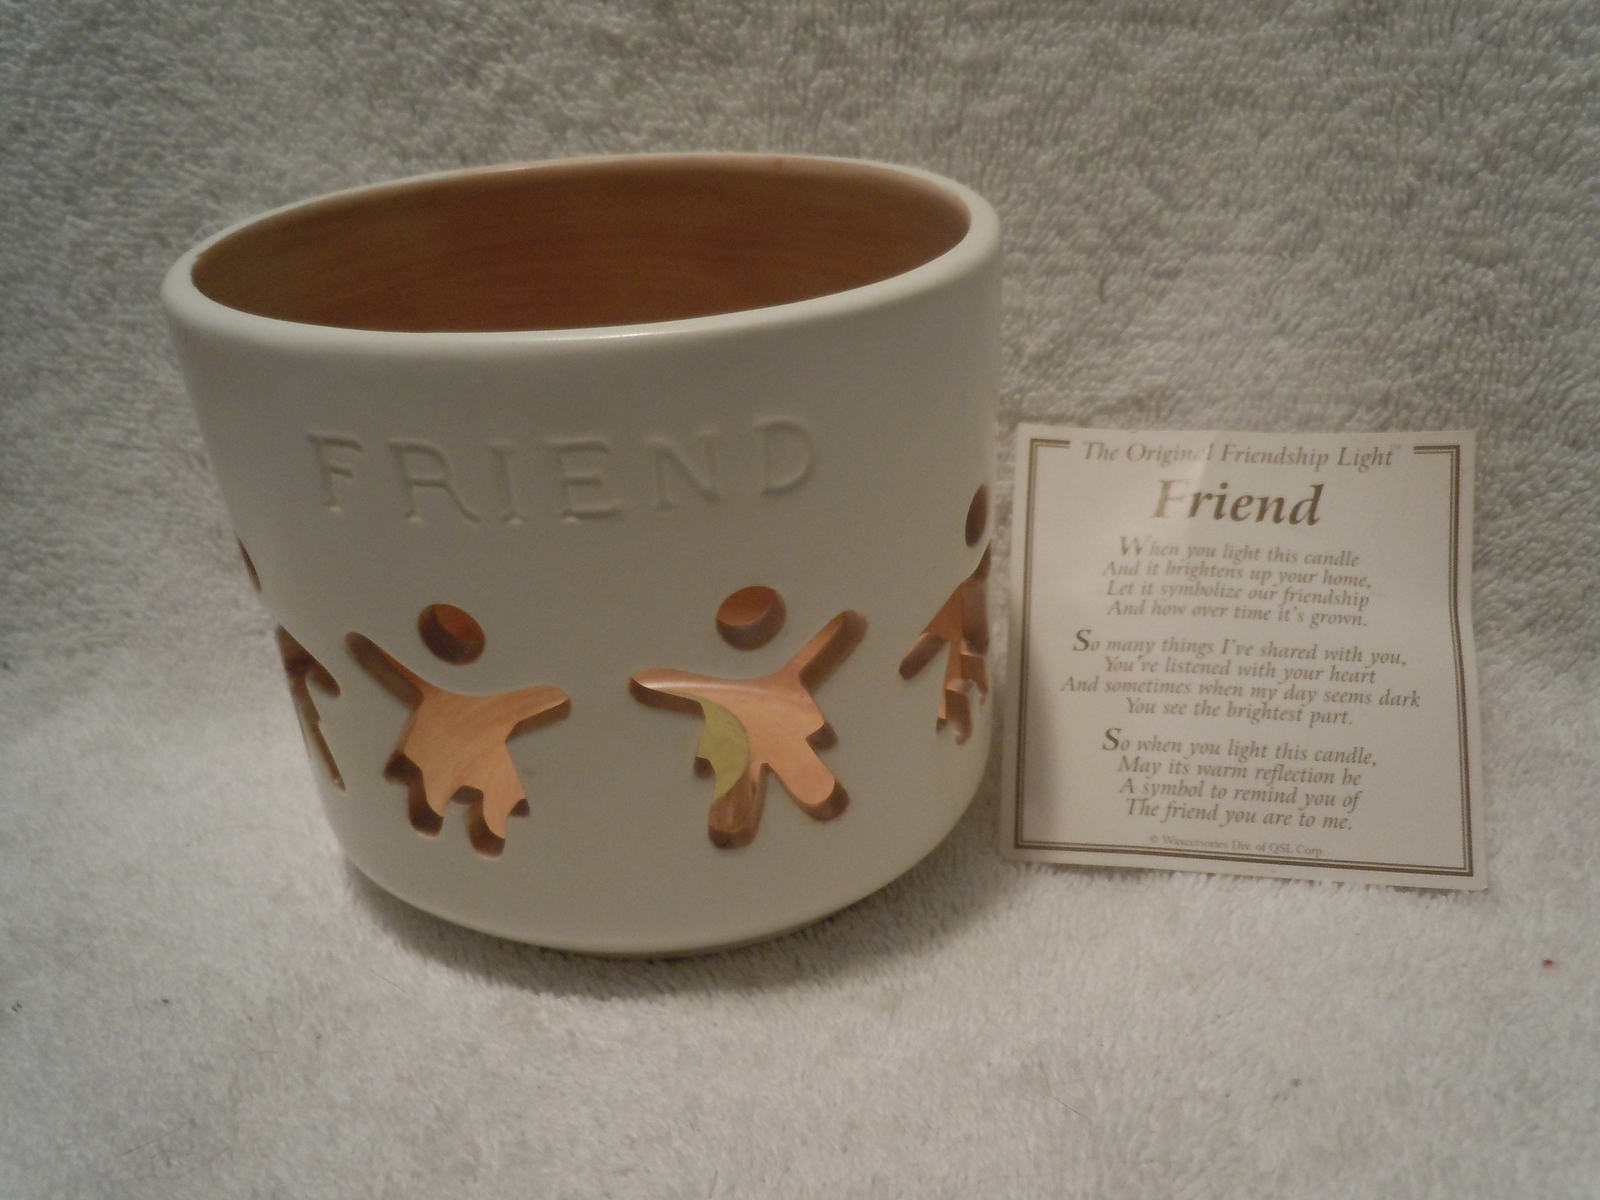 Primary image for Friendship Light Ceramic Candle Holder New